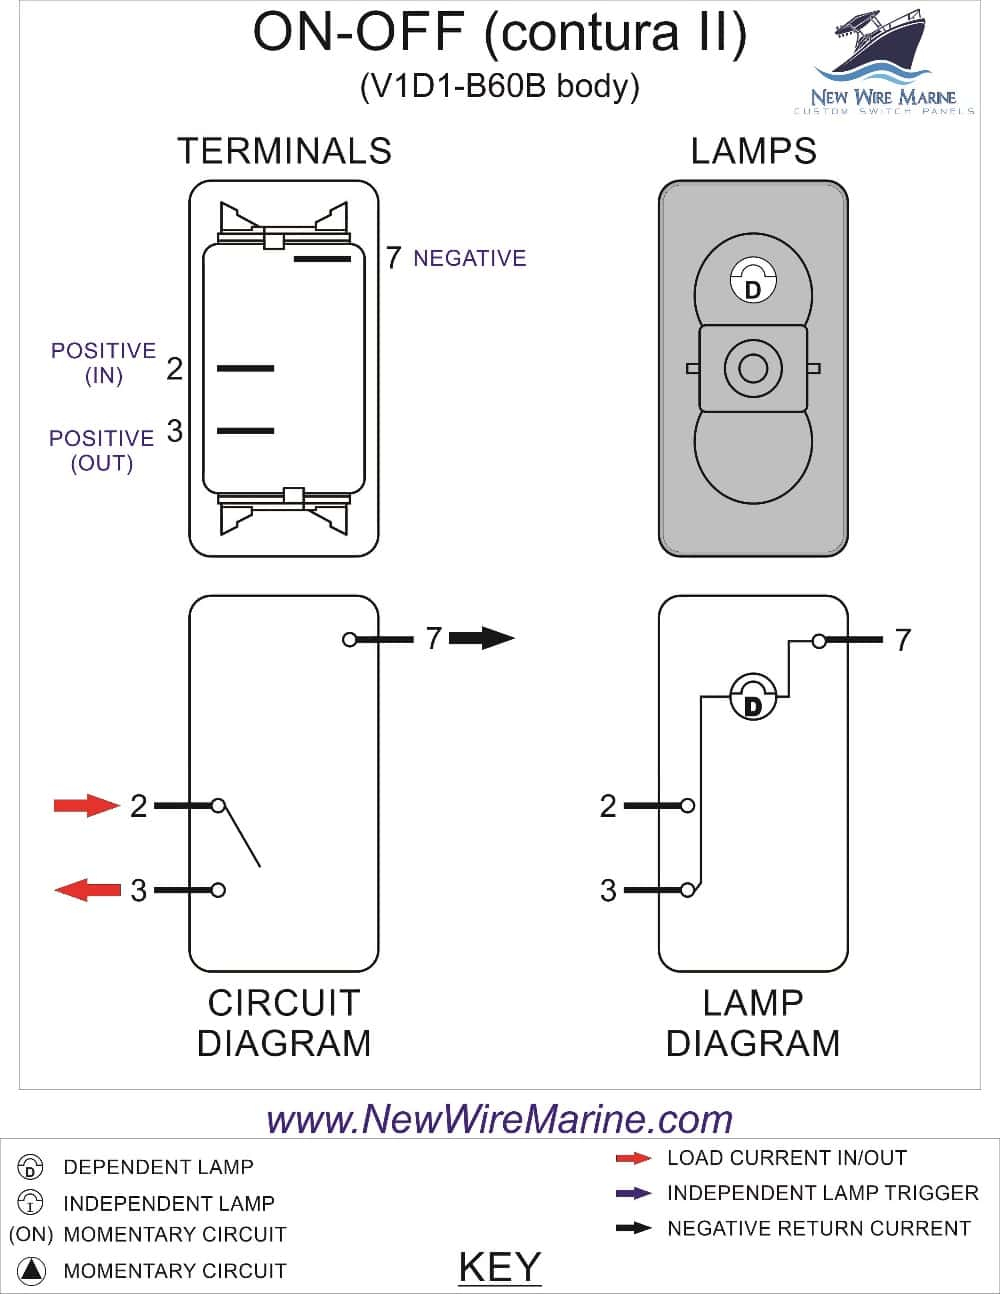 Rocker Switch Wiring Diagrams | New Wire Marine - Carling Switches Wiring Diagram